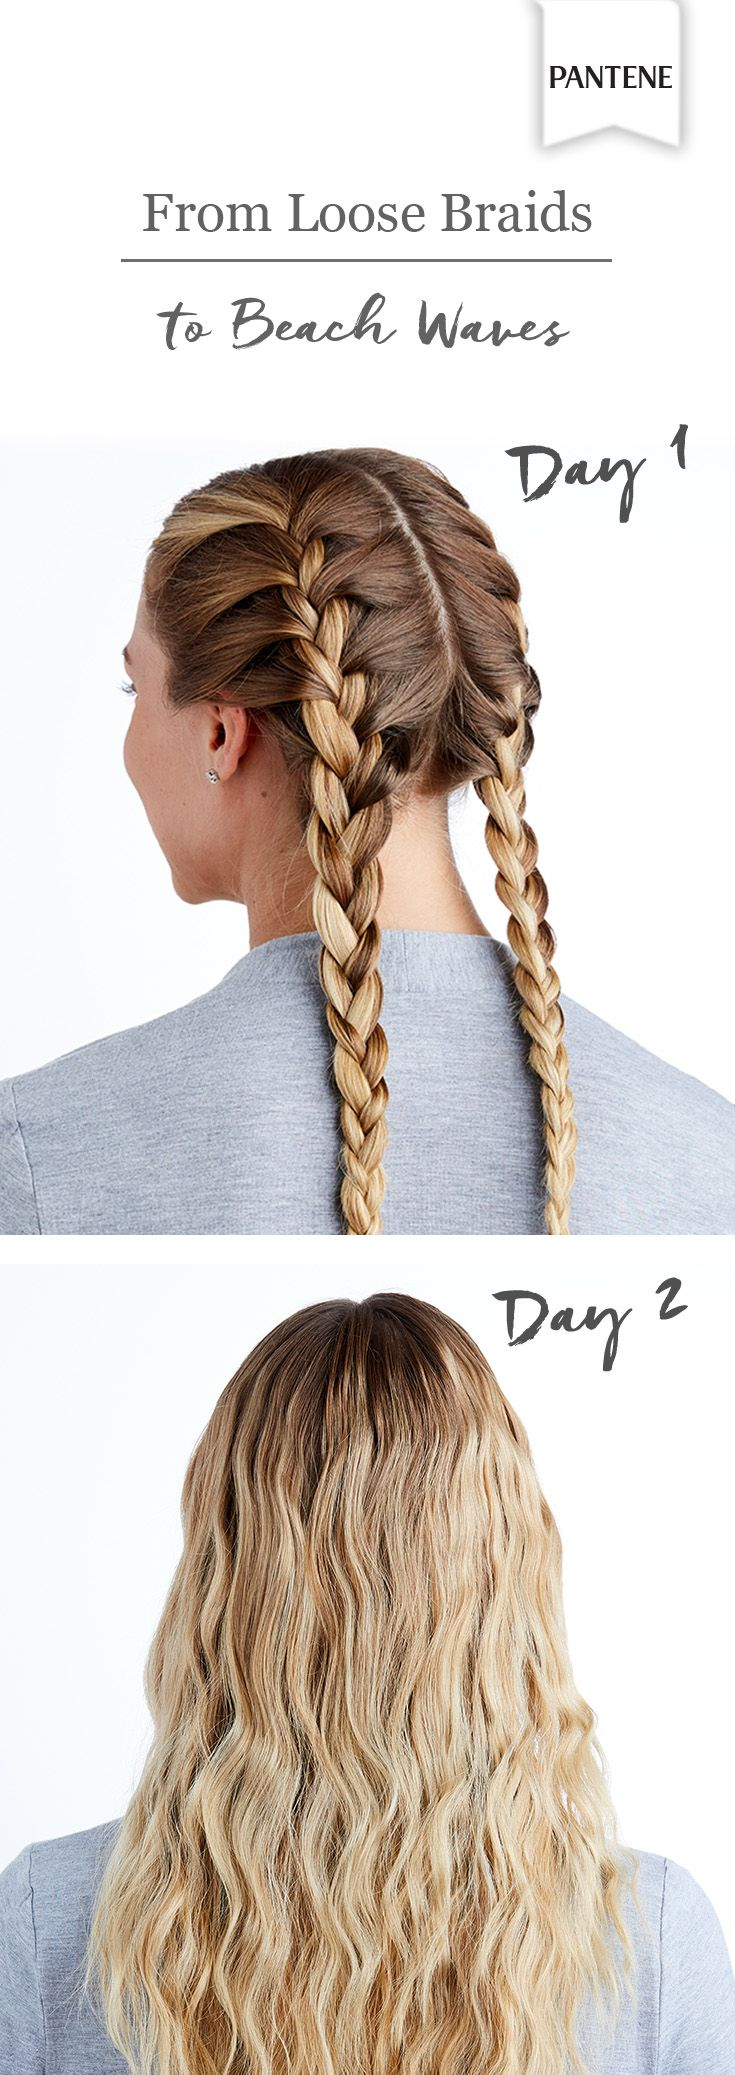 Best 25+ Overnight braids ideas on Pinterest | Wet hair ...